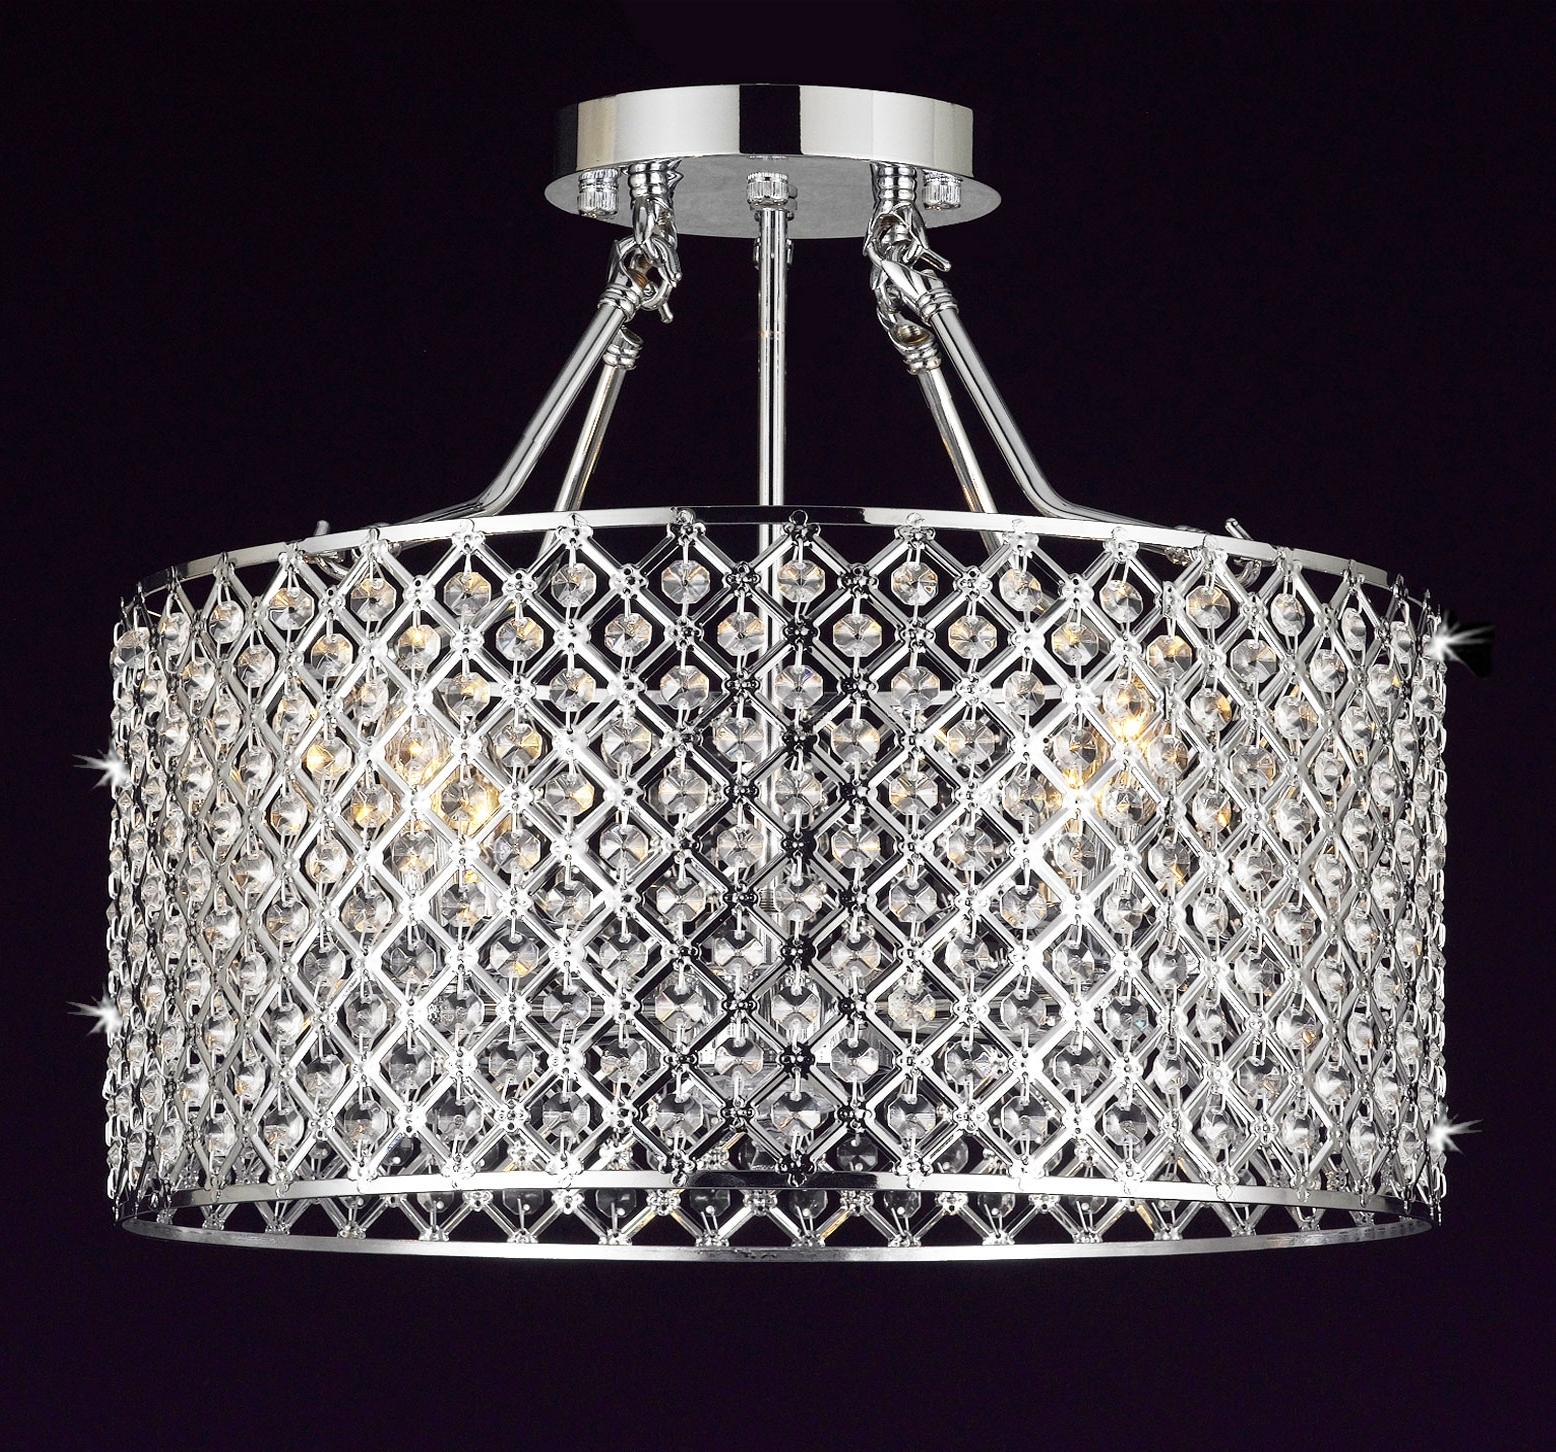 Best And Newest 4 Light Chrome Crystal Chandeliers Regarding G7 B12/white/2130/4 Gallery Chandeliers Flushmount 4 Light Chrome (View 13 of 15)